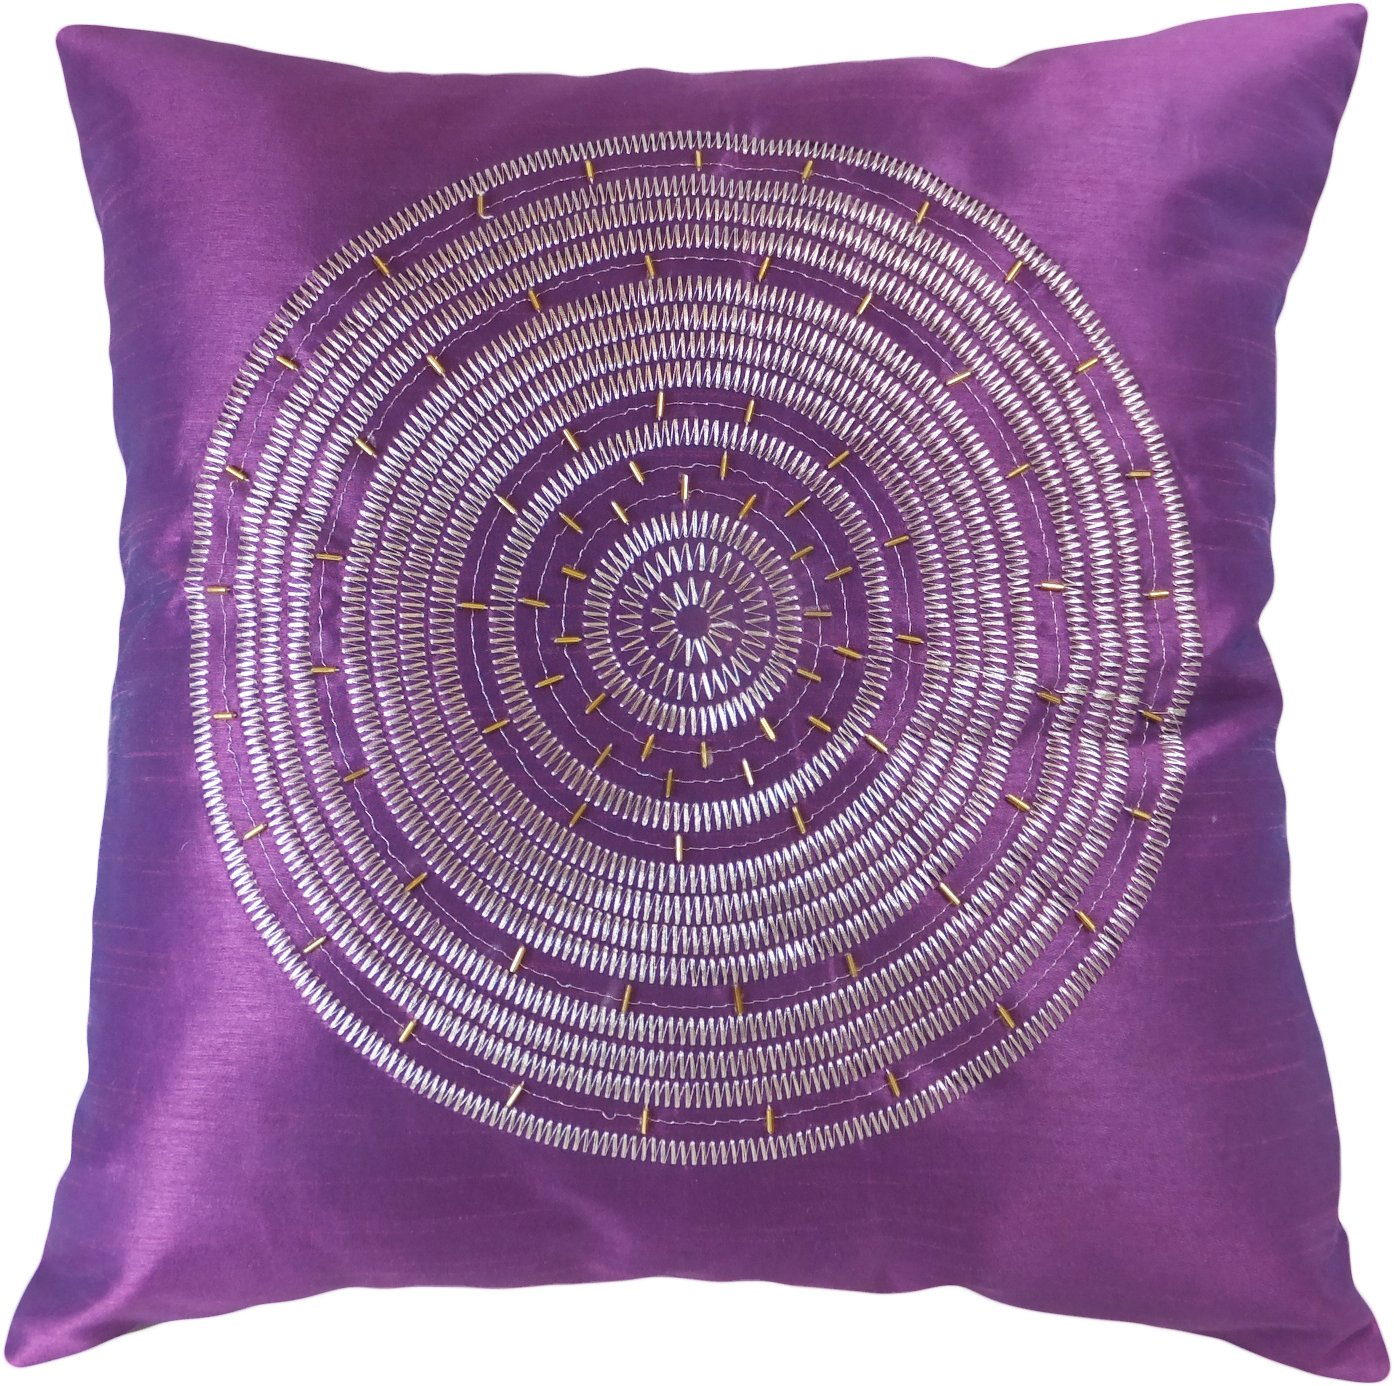 Decorative Emboirdery & Beads Floral Throw Pillow Cover 18 Purple